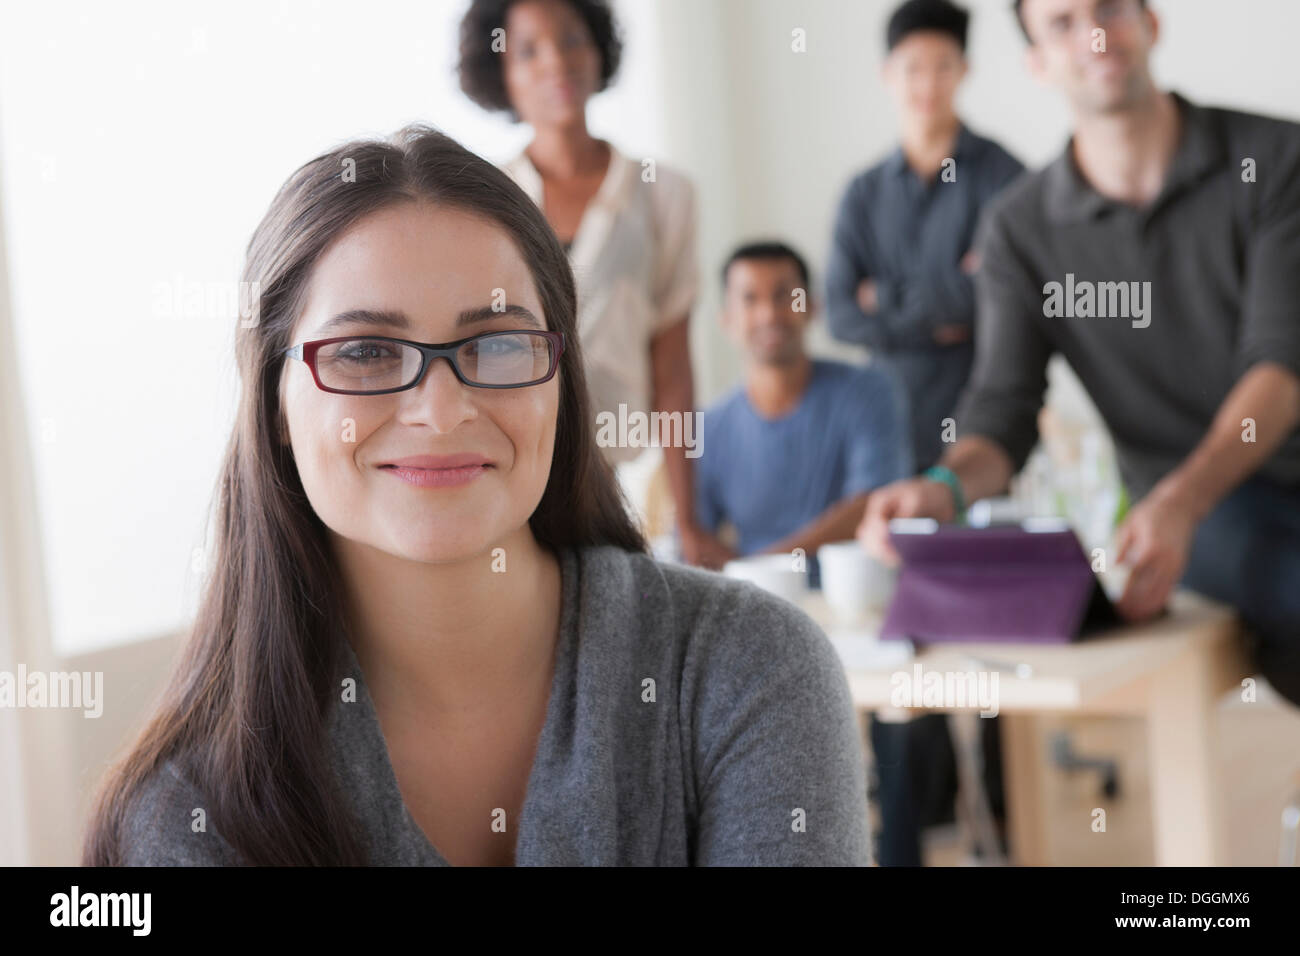 Portrait of young female office worker in front of colleagues - Stock Image